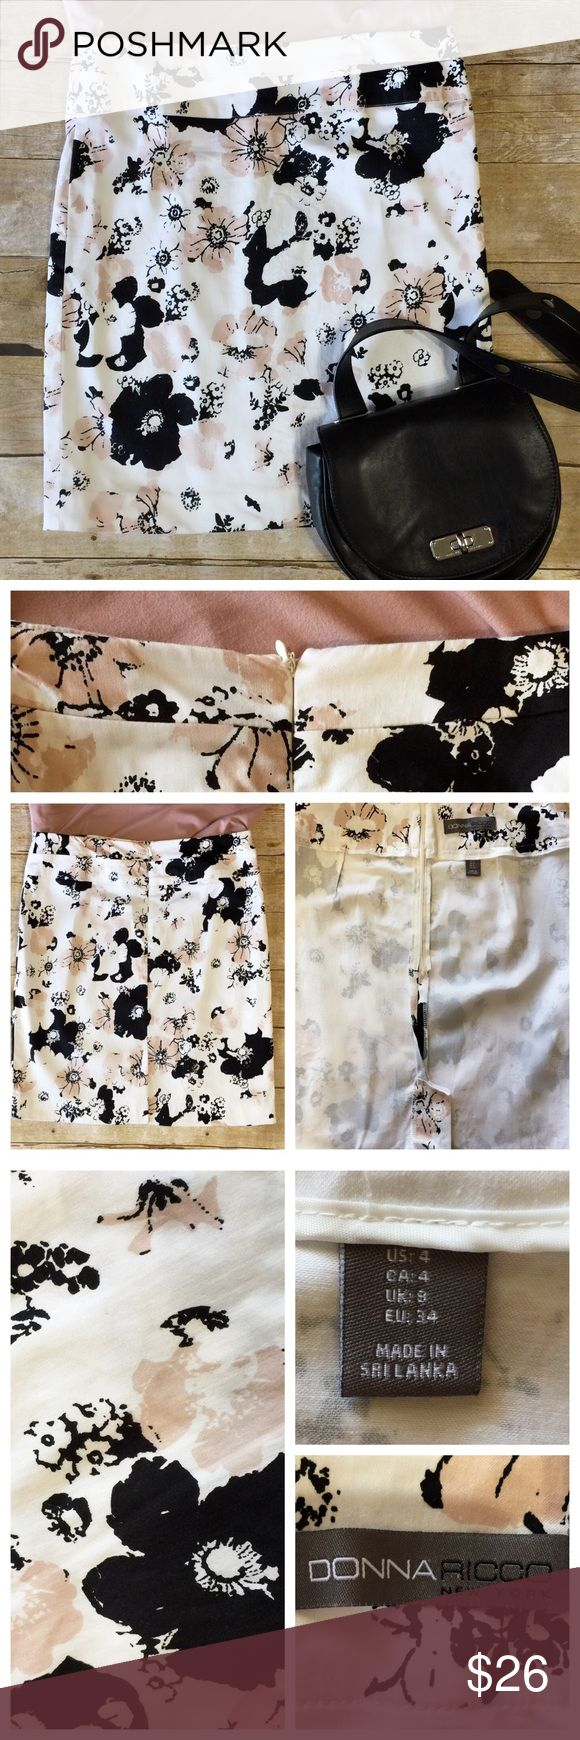 💖DONNA RICCO New York Floral Skirt Size 4 🔸DONNA RICCO NEW YORK A-Line Floral Skirt-Size 4-Above the Knee-Zipper Back-Colors:  White, black and blush-Excellent Condition 🔸Please look in pics for more info and approx. measurements including length and waist🔸  🛍Thank You, Deb Donna Ricco Skirts A-Line or Full